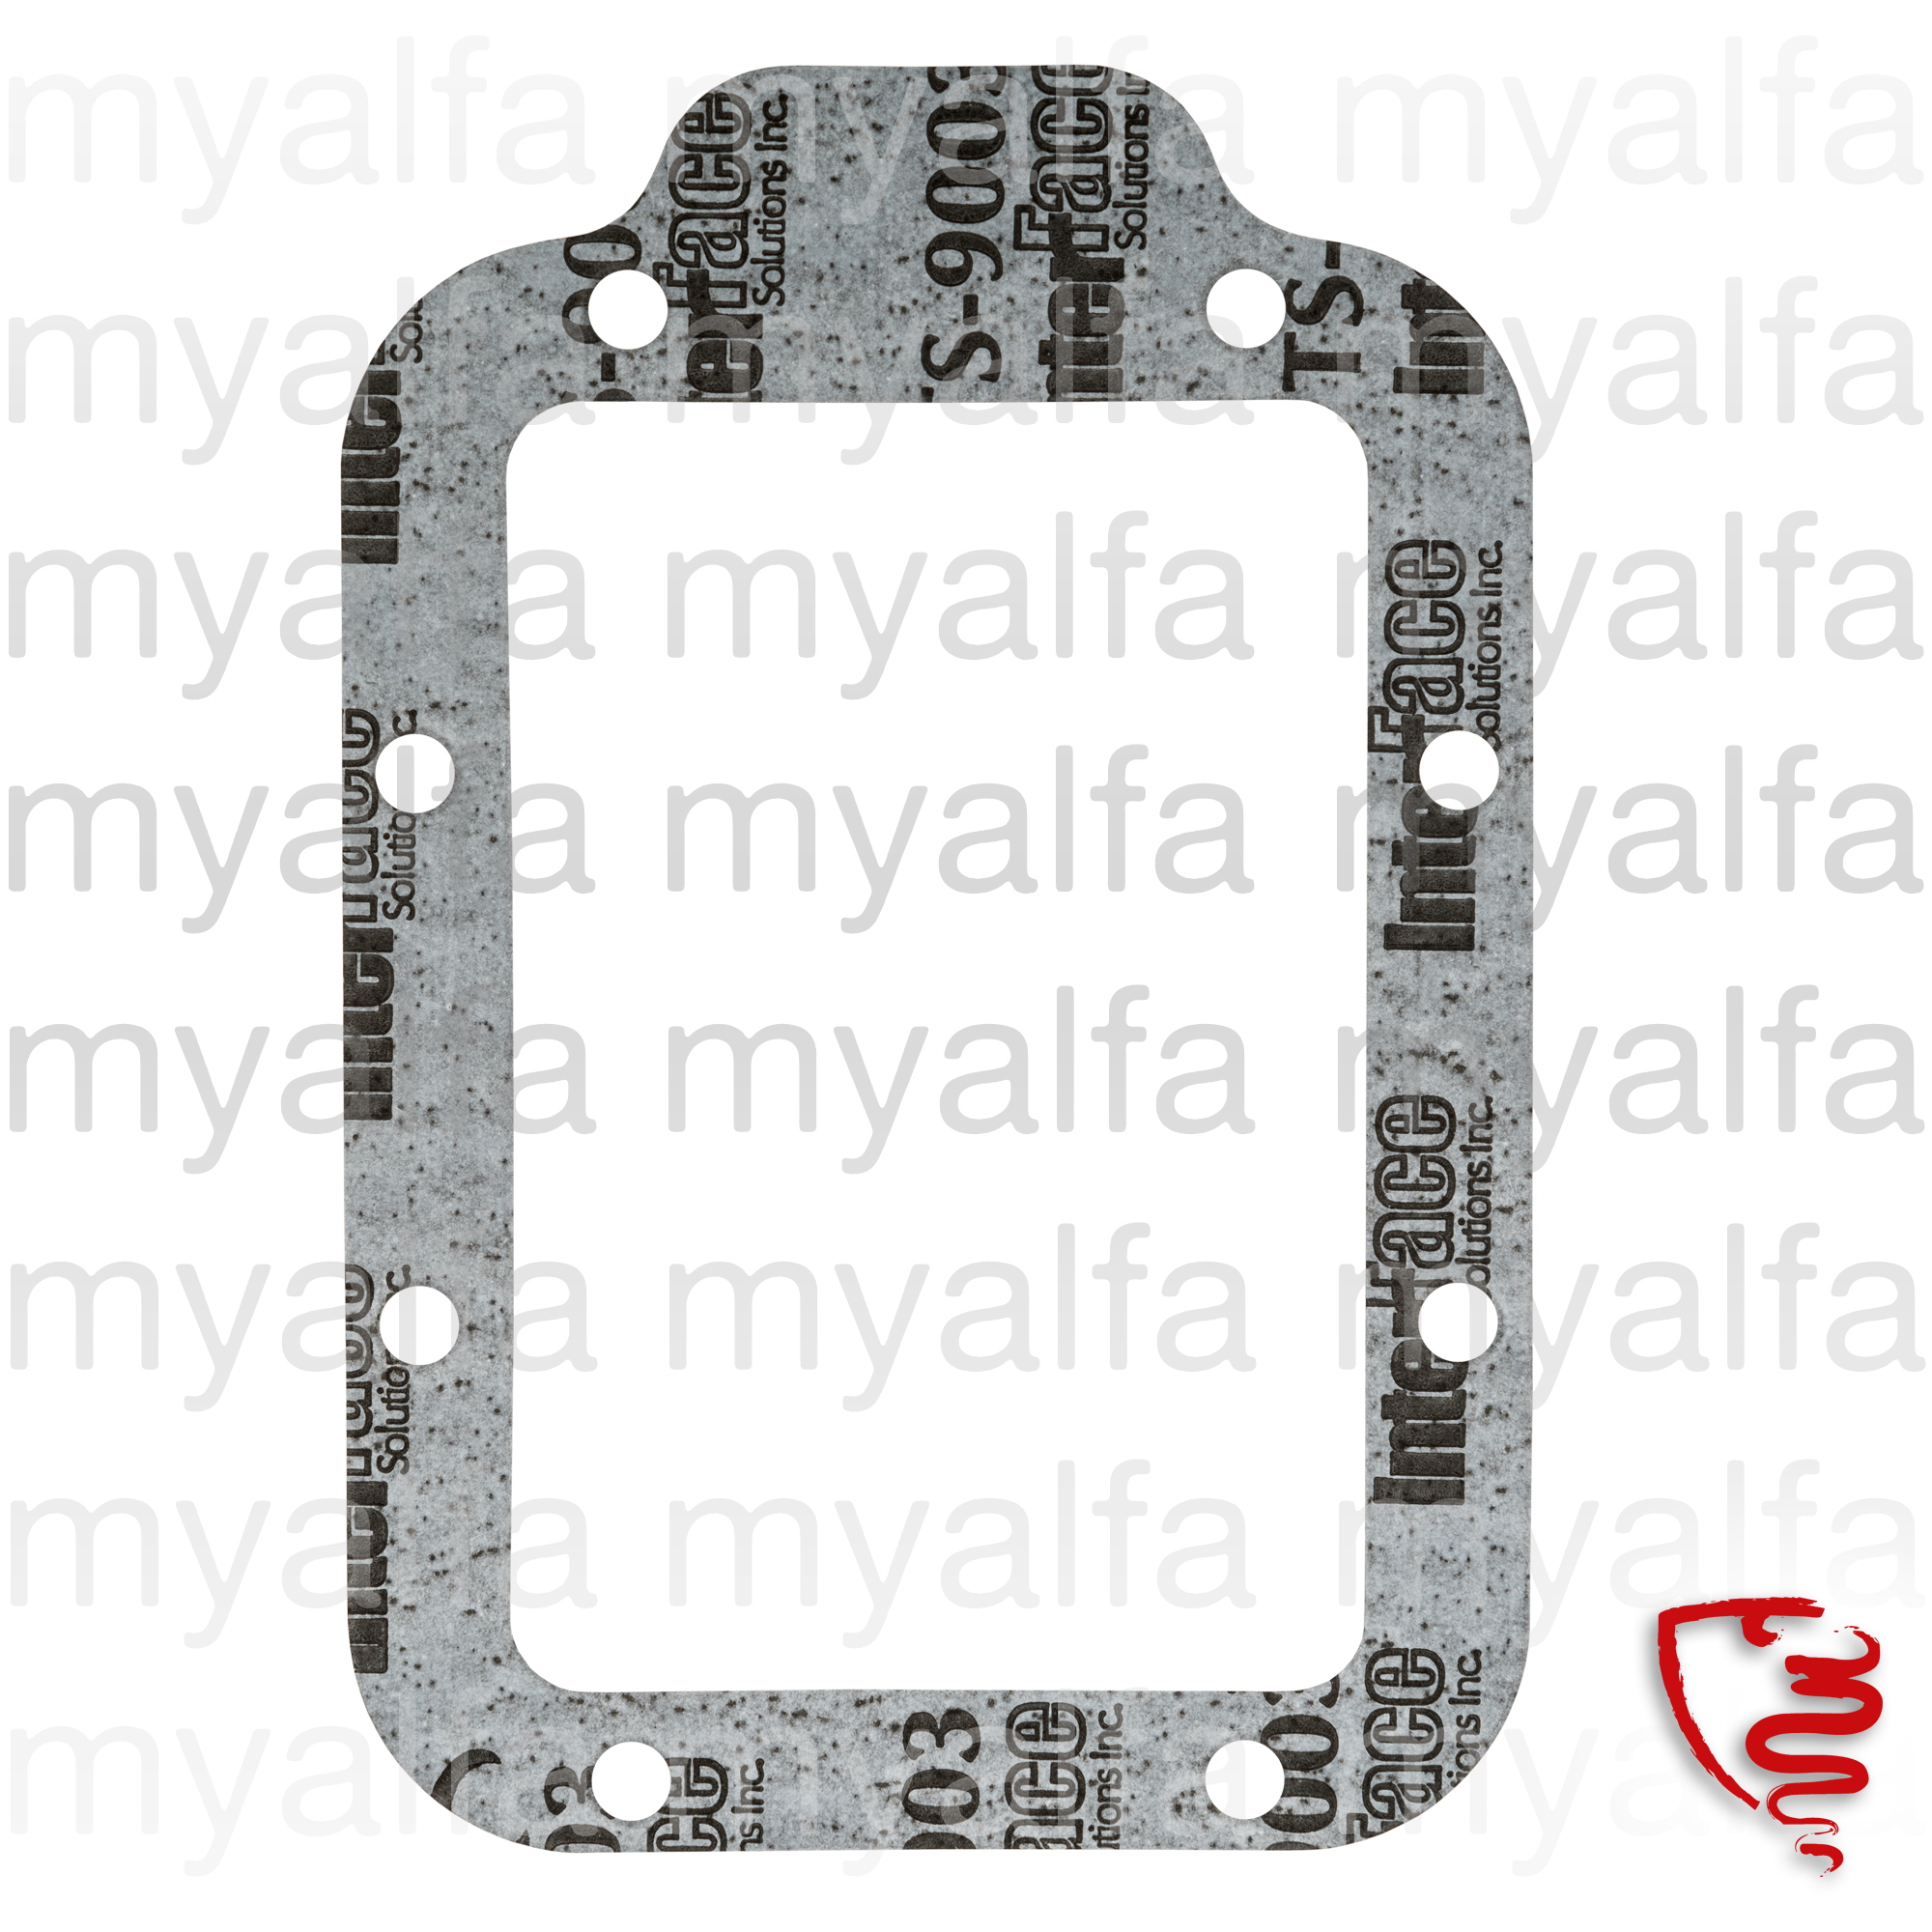 Gasket differential cover 2000 for 105/115, Differential, Mounting Parts